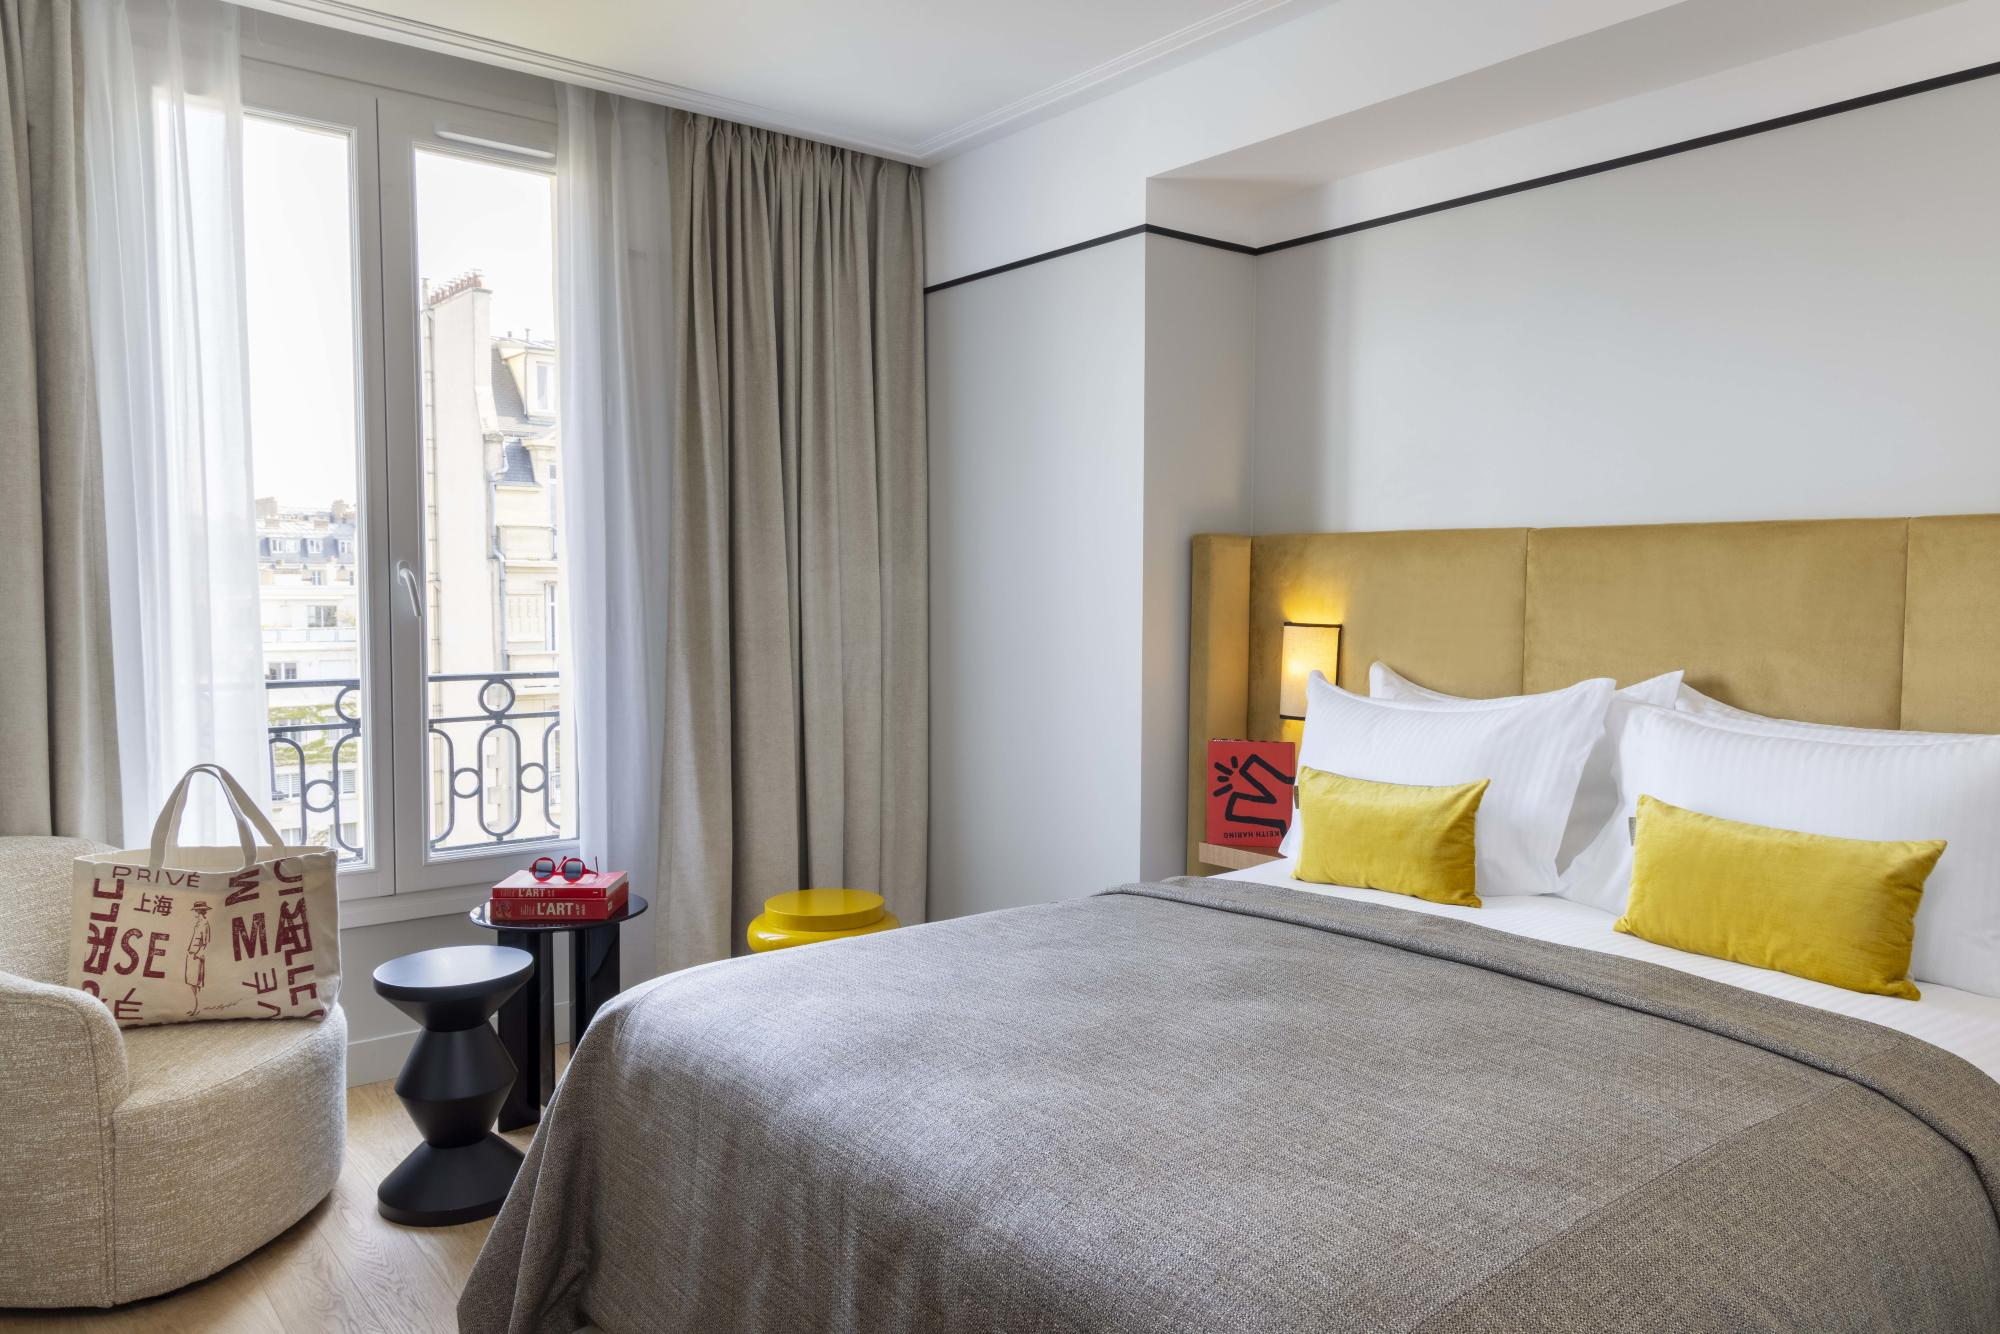 686/Photos/chambres/Deluxe/hotel-le-37-bis-chambres-deluxe-031.jpg